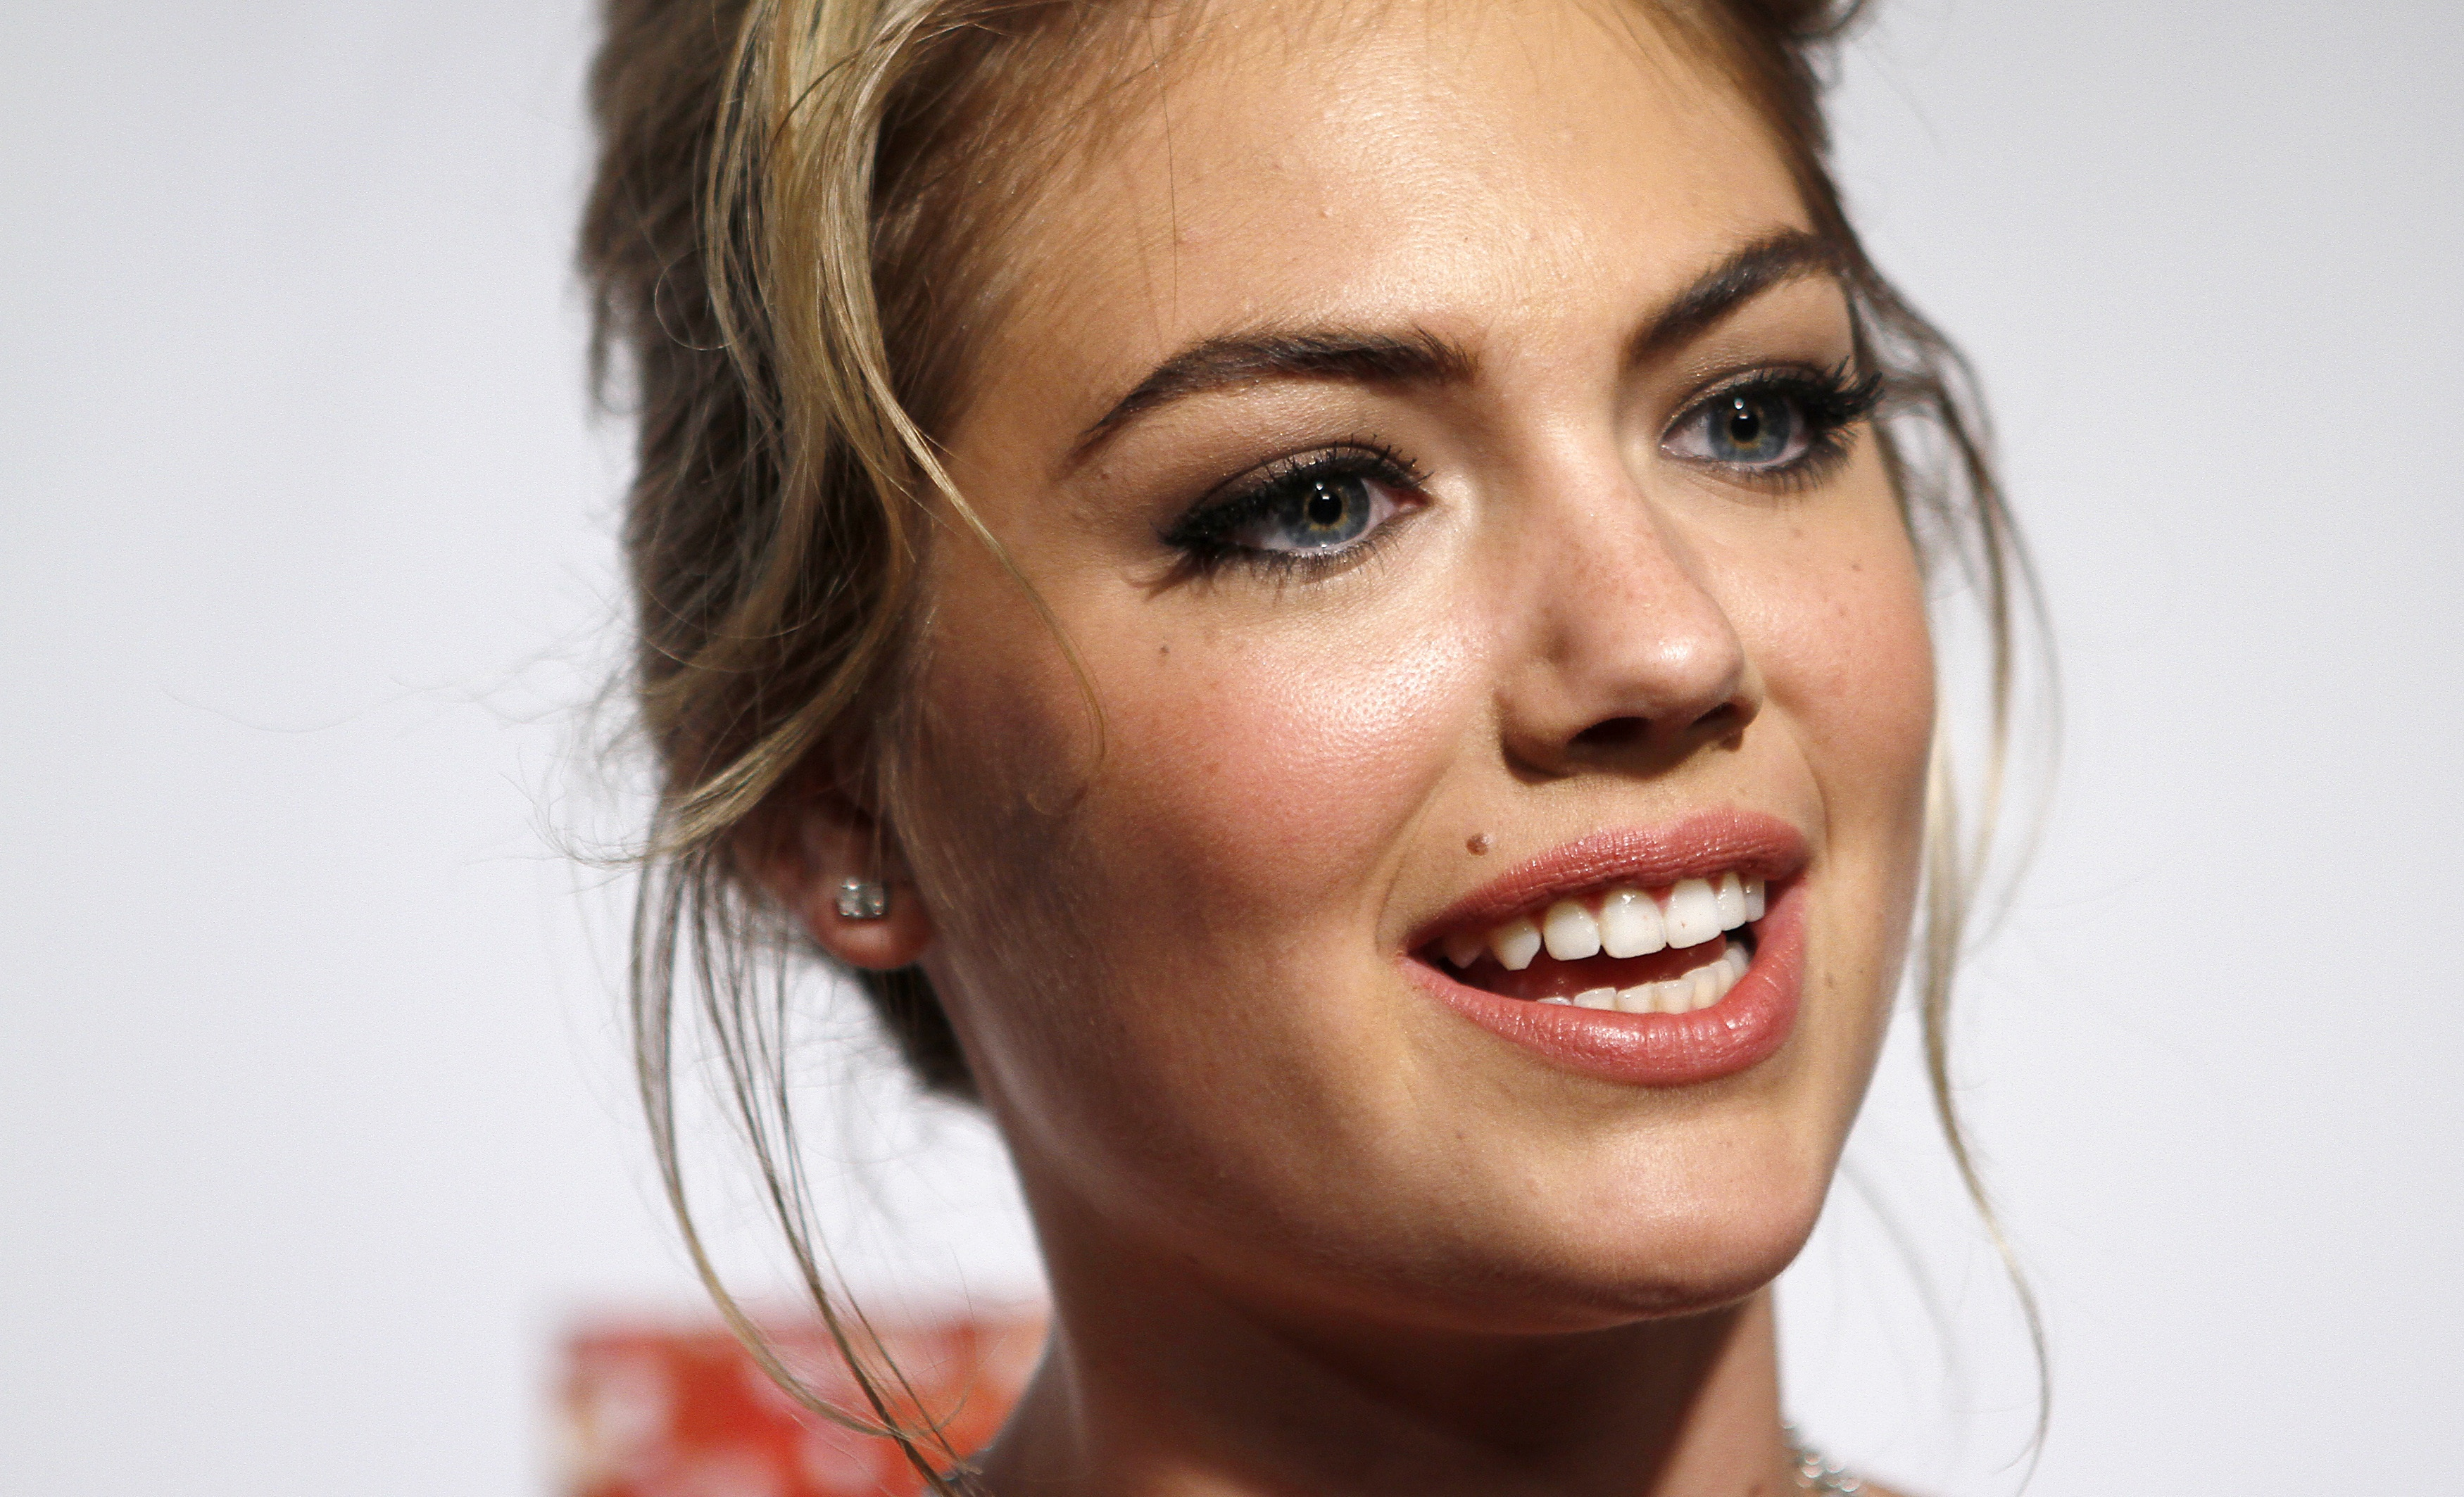 kate upton face hd wallpaper 60215 3500x2127px